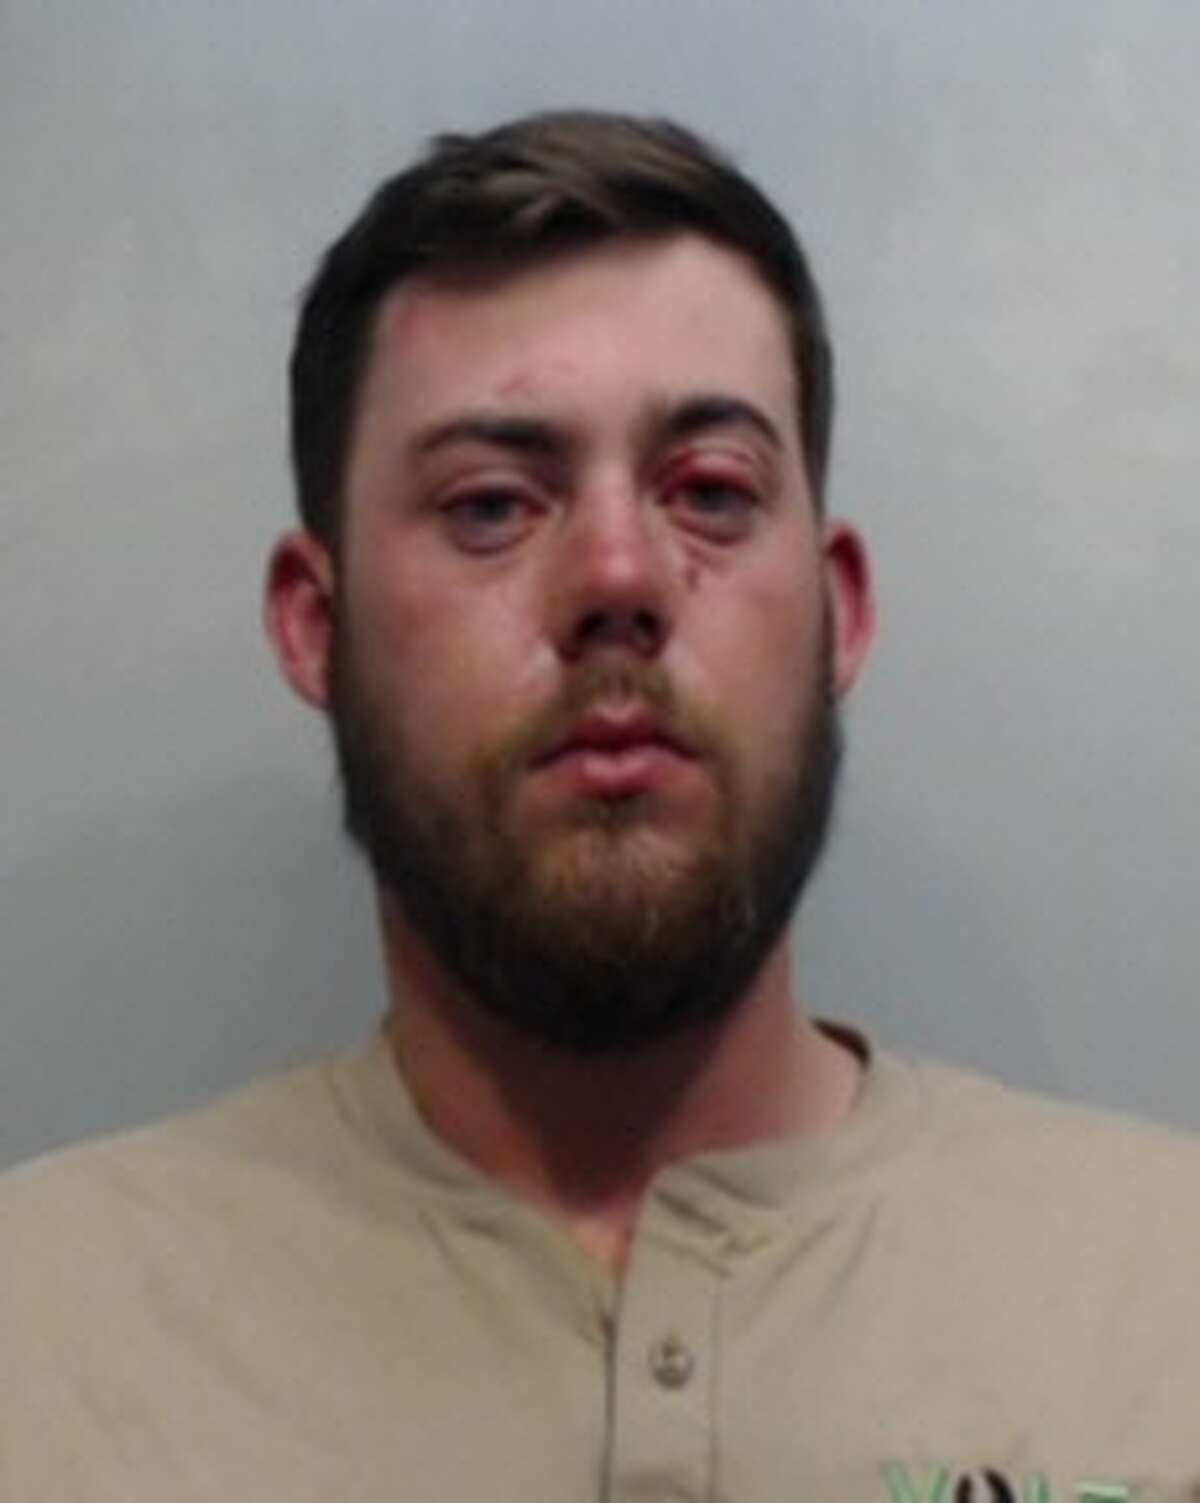 Zachary Adams, 21, faces a charge of intoxication assault on a peace officer.